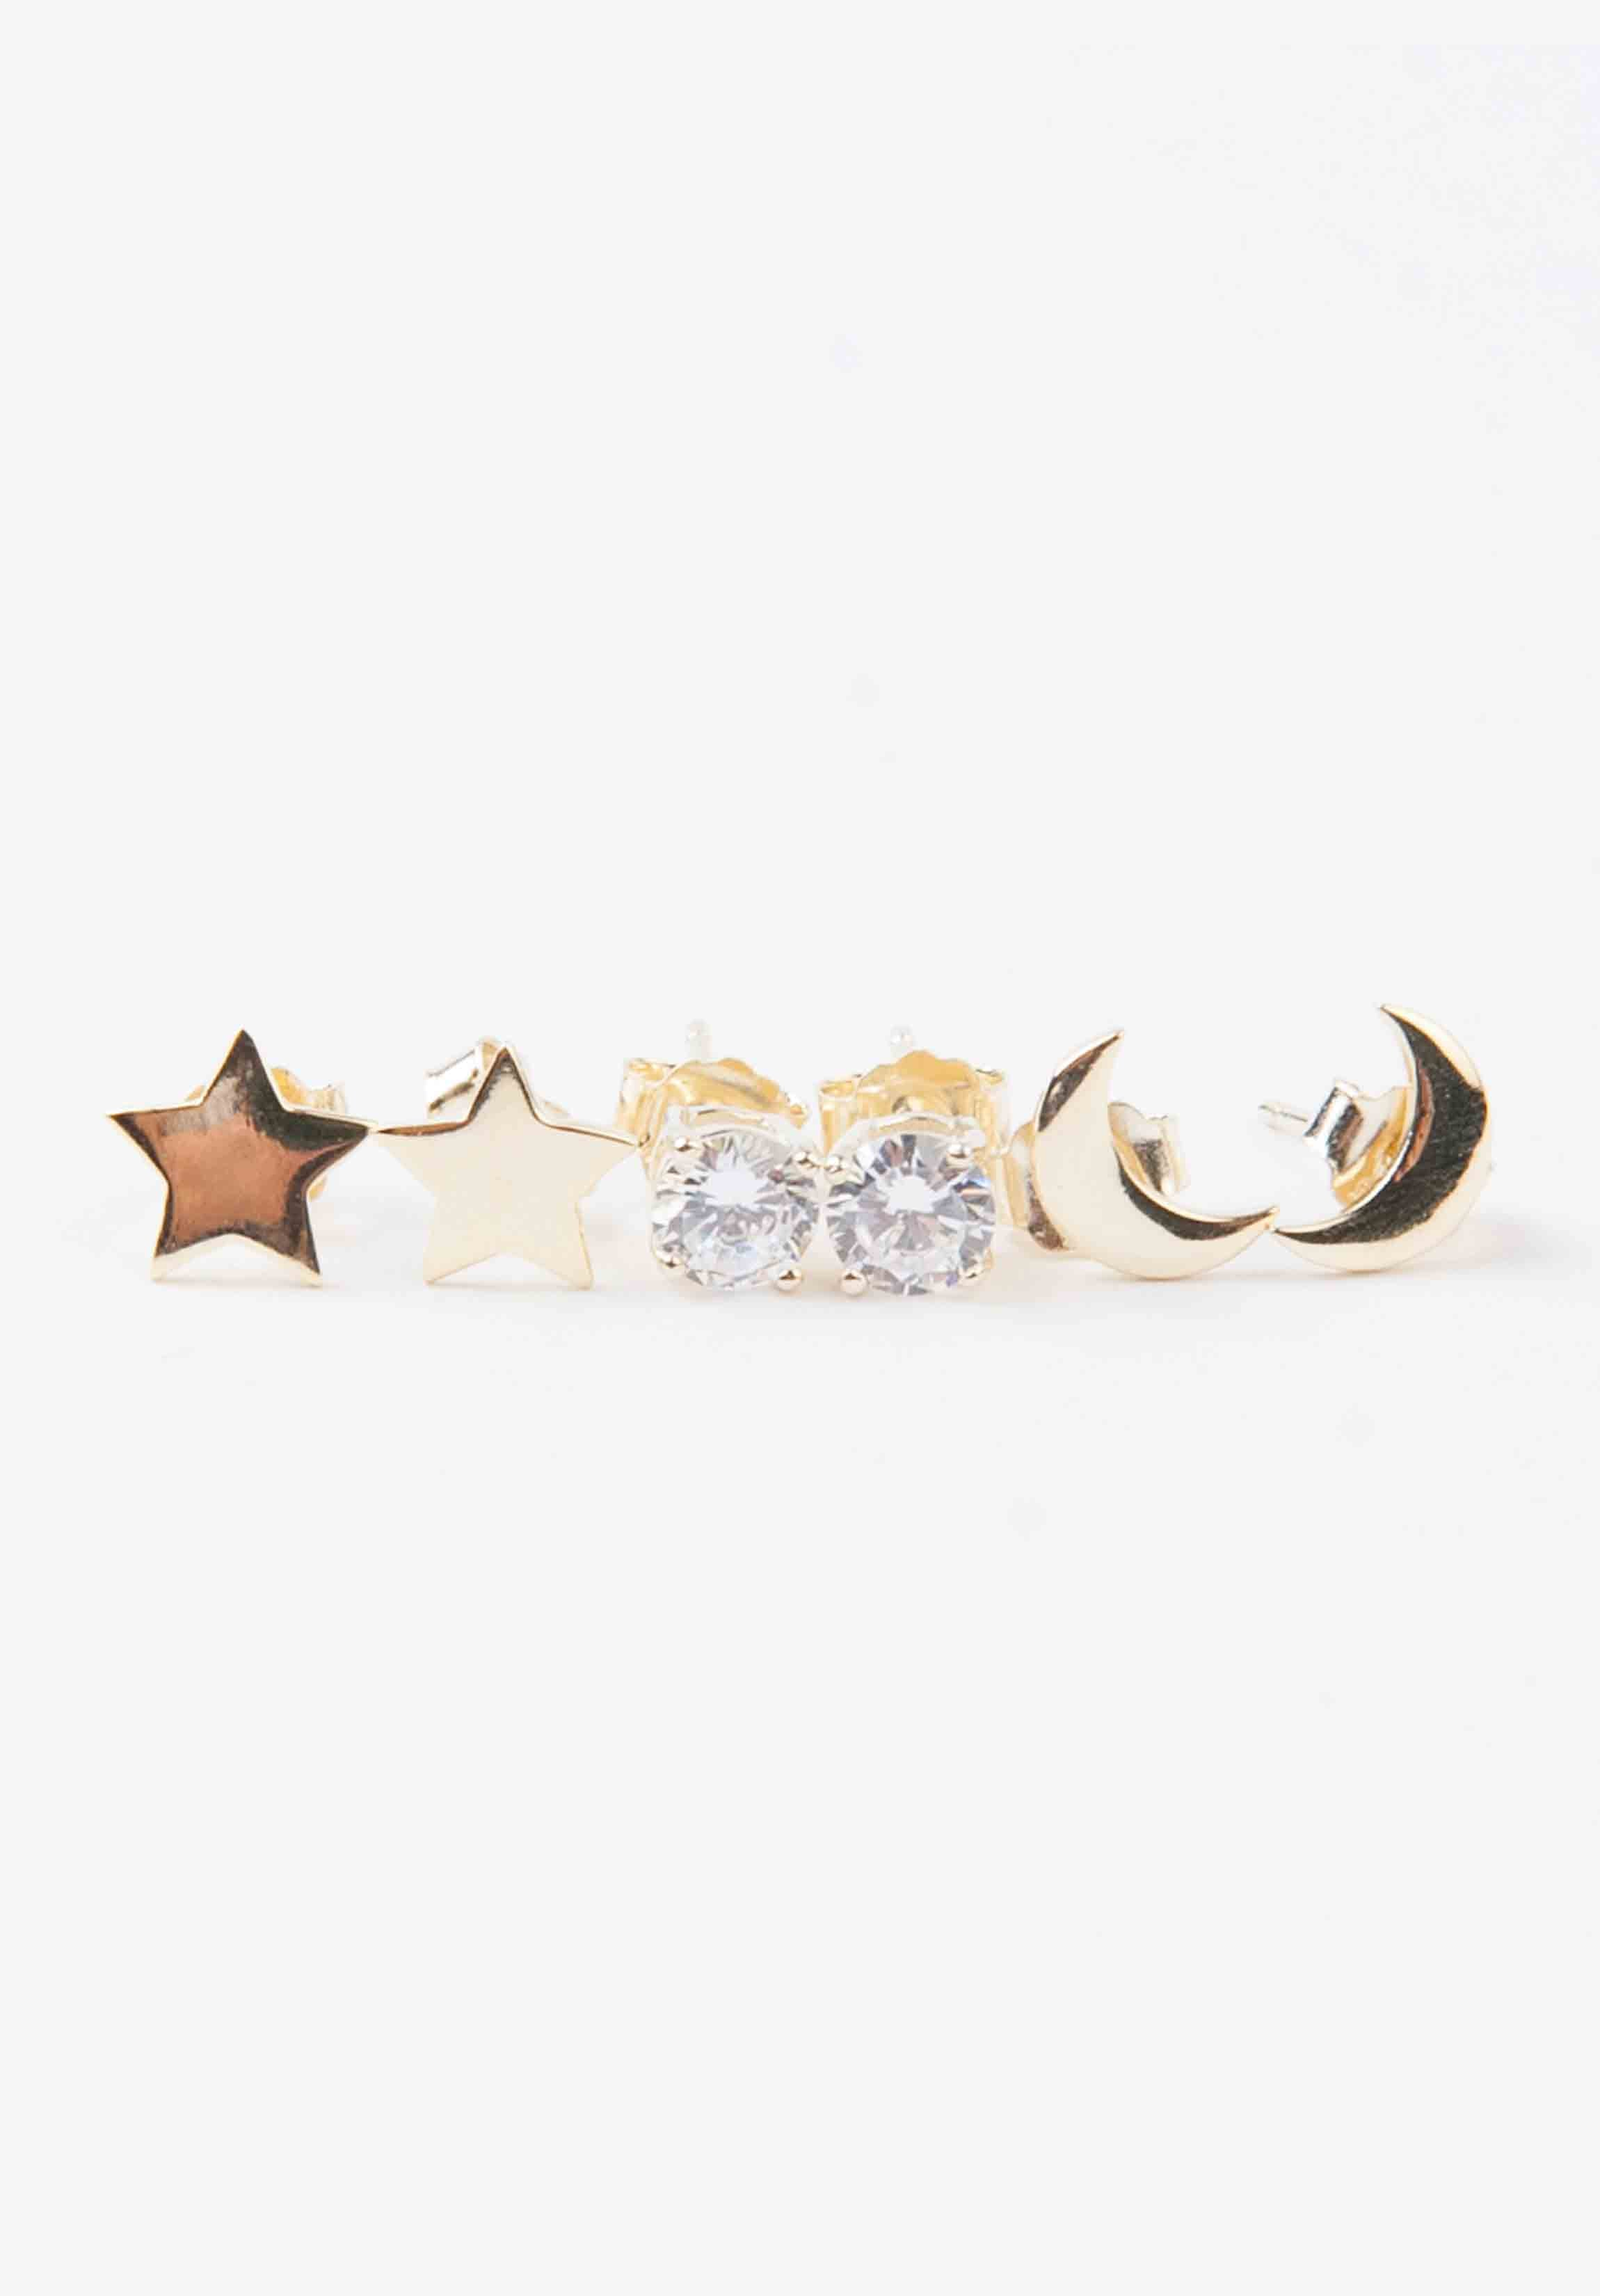 MOON & STAR EARRING SET | GOLD